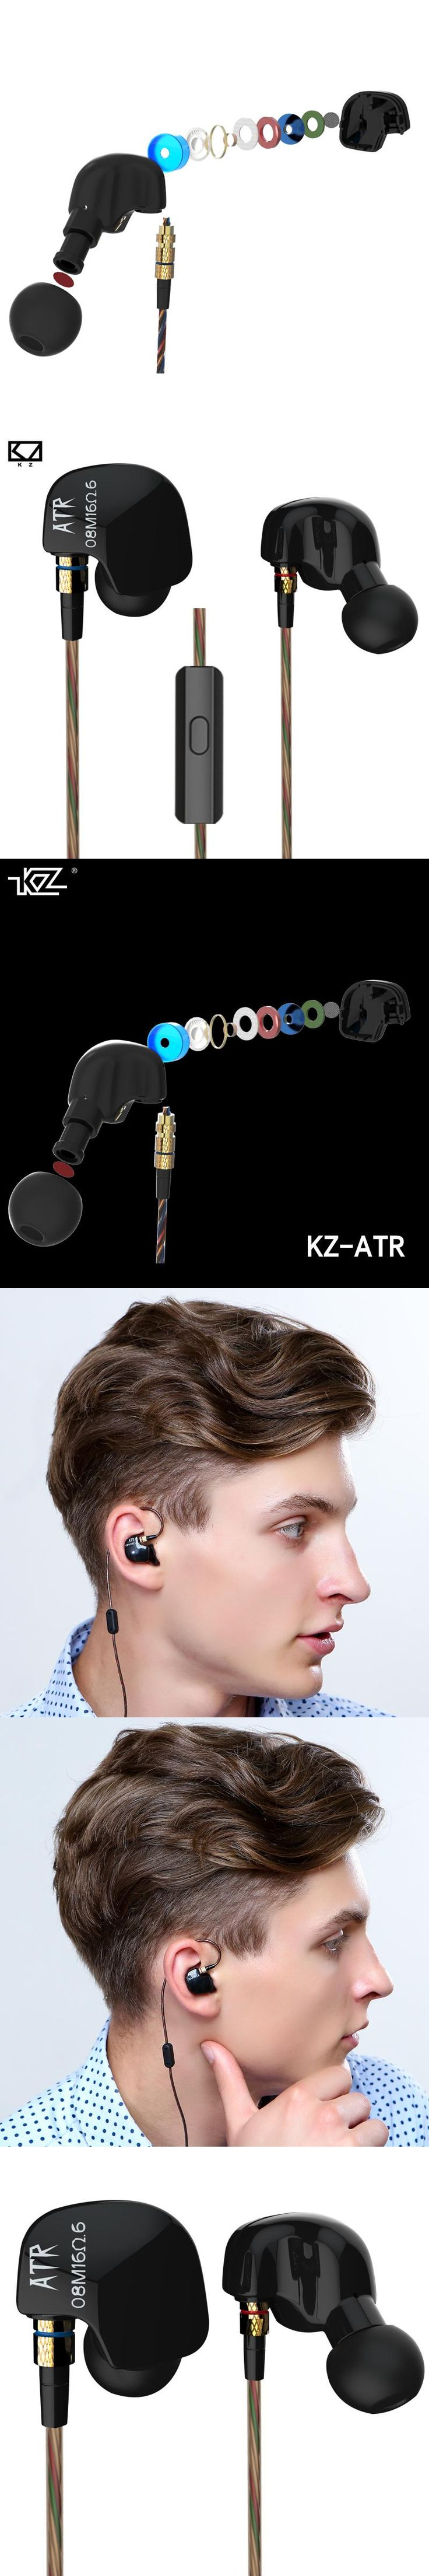 Original KZ ATR In-Ear Earphone Noise Cancelling Earbuds with Mic Sports Stereo Bass HIFI Headset ABS Dynamic Unit for iPhone 7